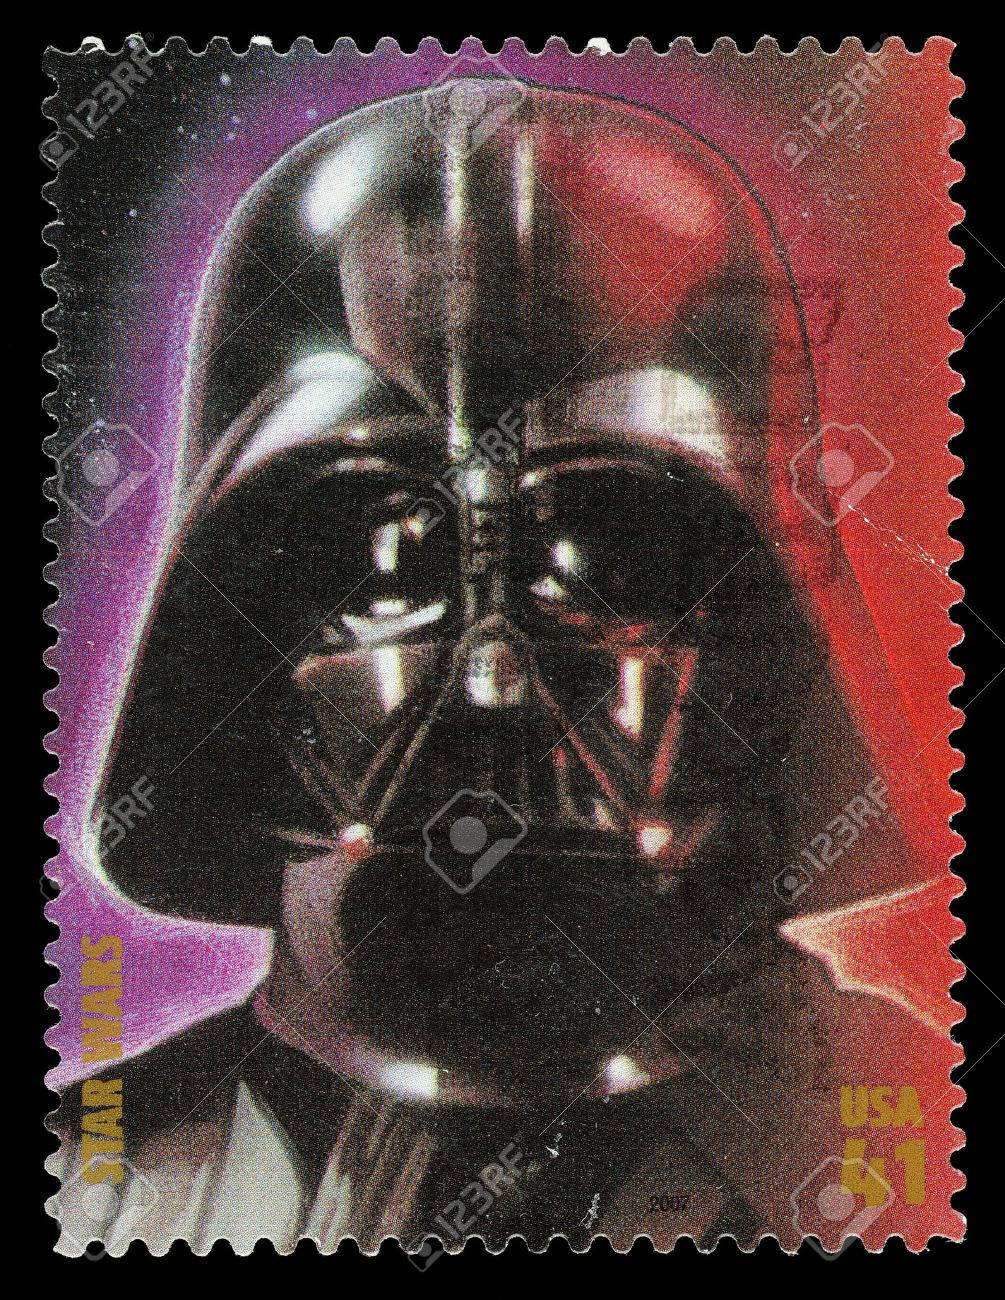 United States - CIRCA 2007: A Used Postage Stamp printed in the United States, showing Darth Vader from the Star Wars Films, circa 2007 Stock Photo - 22688197